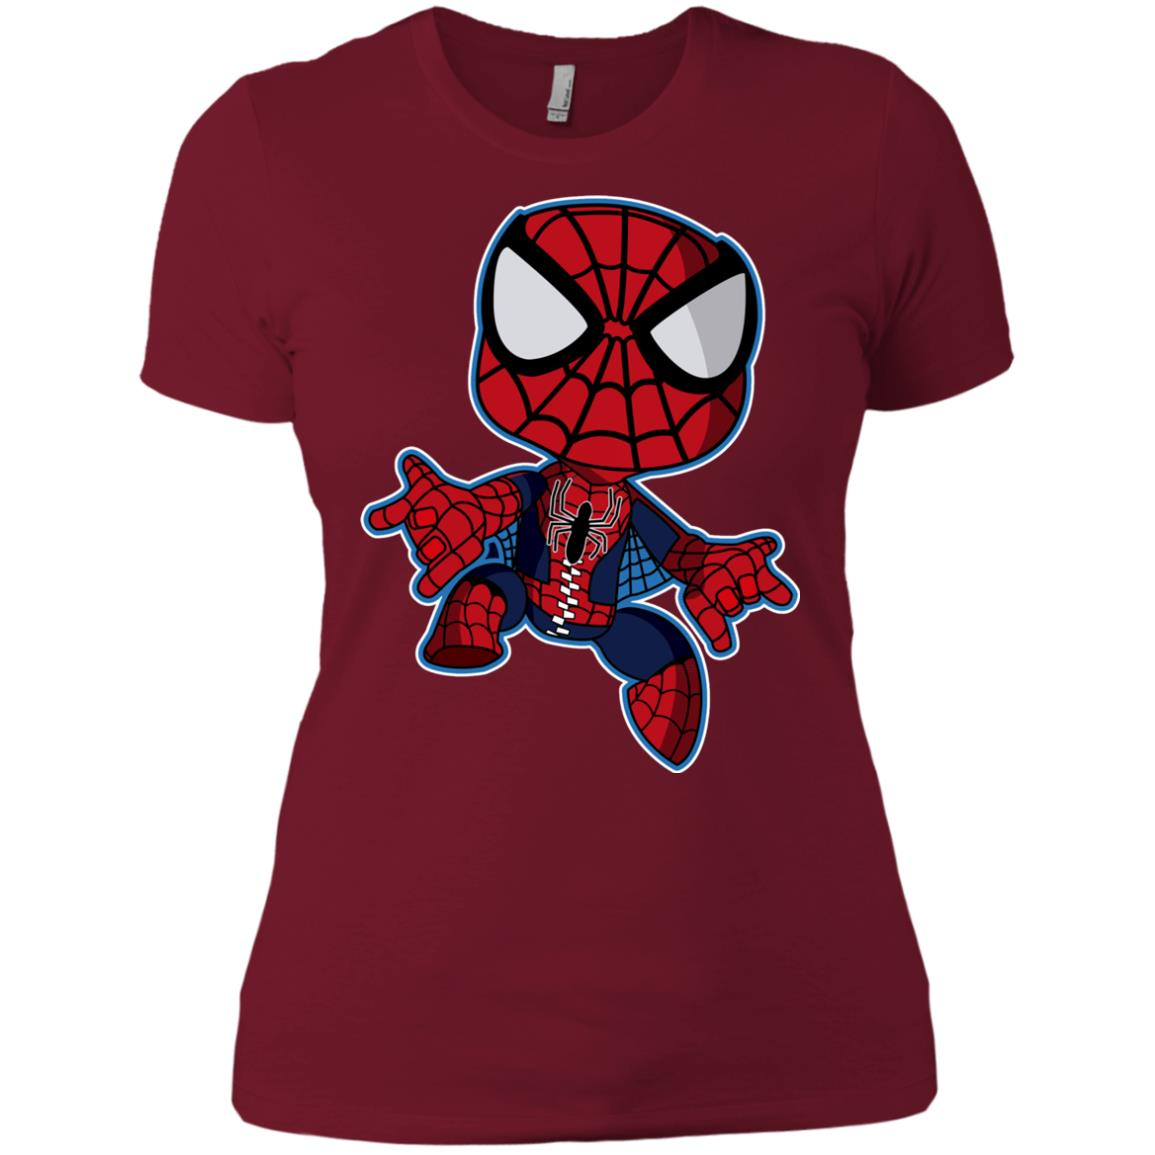 2a0d9860 Spiderman Chibi Women's T-Shirt - UnicornAZ - Fortnite, Sport ...